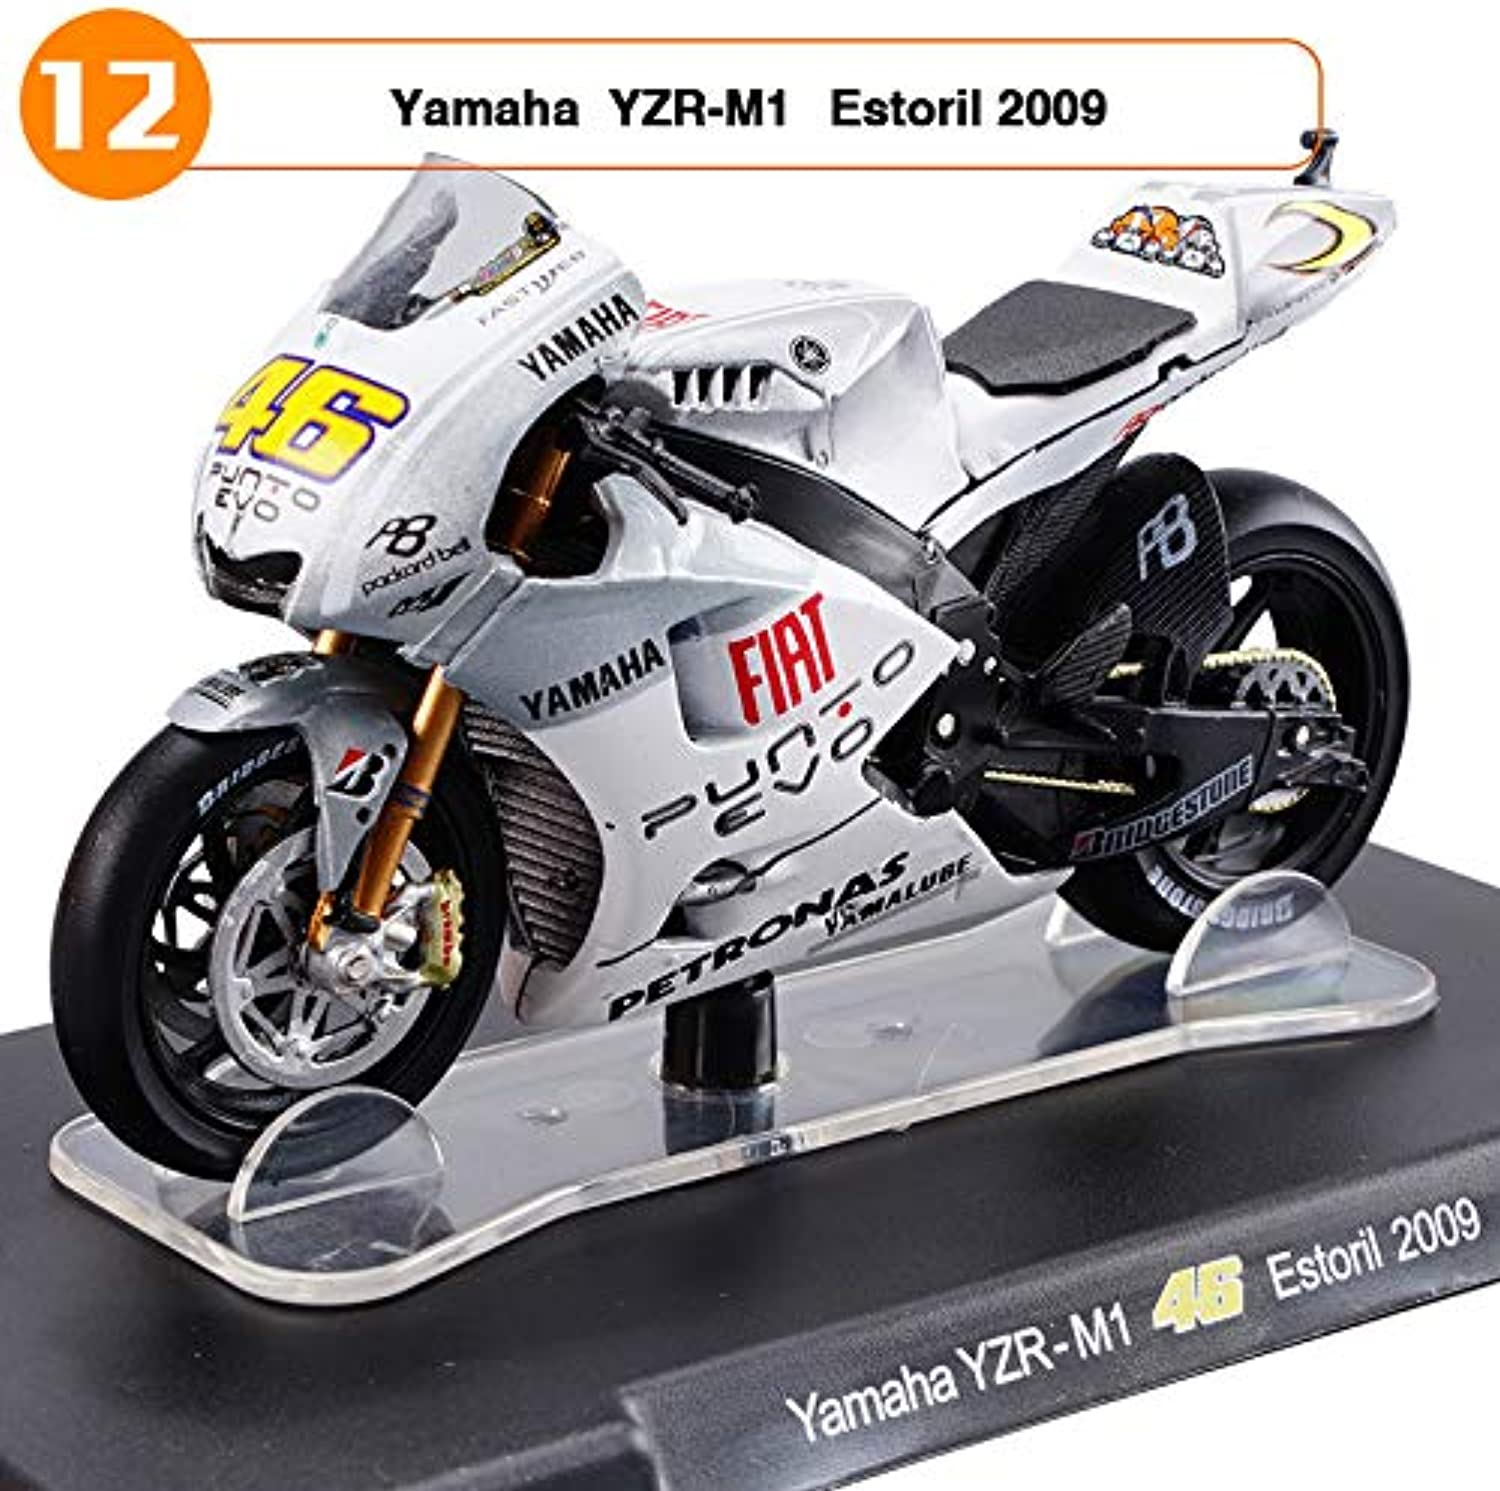 Generic 1 18 Scale Yamaha Yamaha Yamaha Honda Aprilia 46 Valentino Rossi MotoGP Diecast Motorcycle Toy Collecion Racing Bike Models for Kids Gift gold 32993a